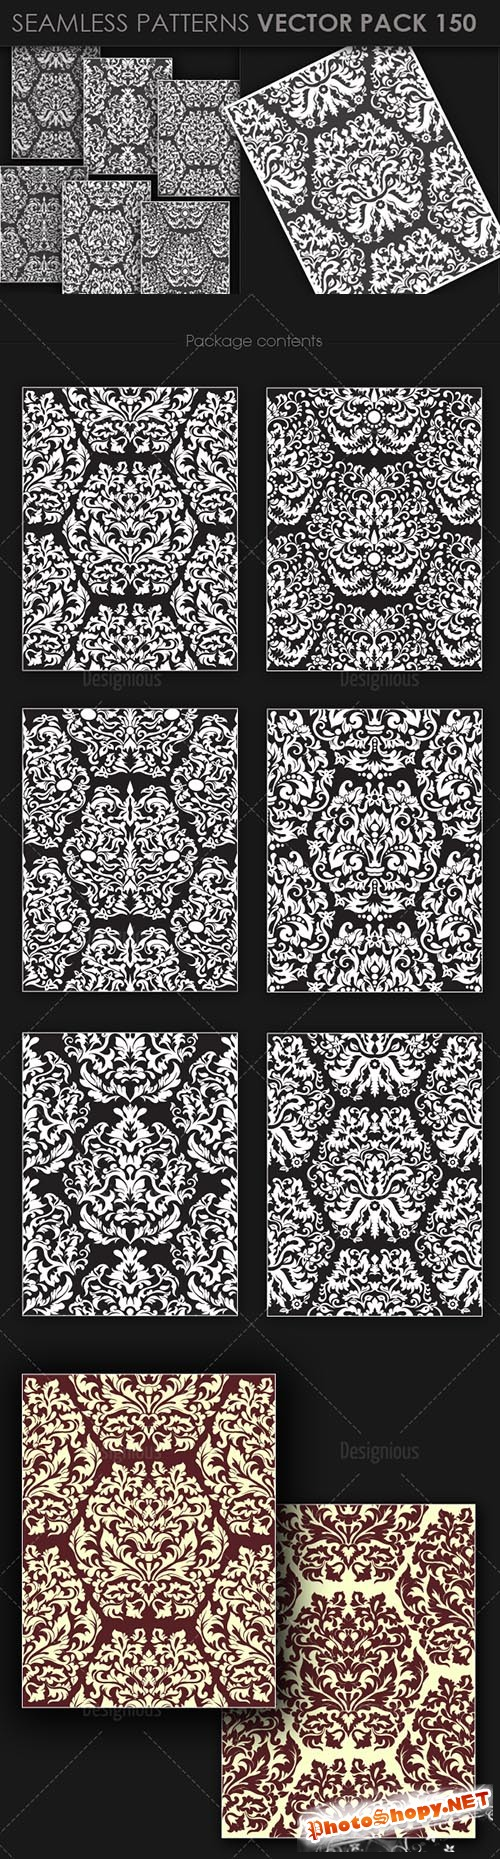 Seamless Patterns Vector Pack 150